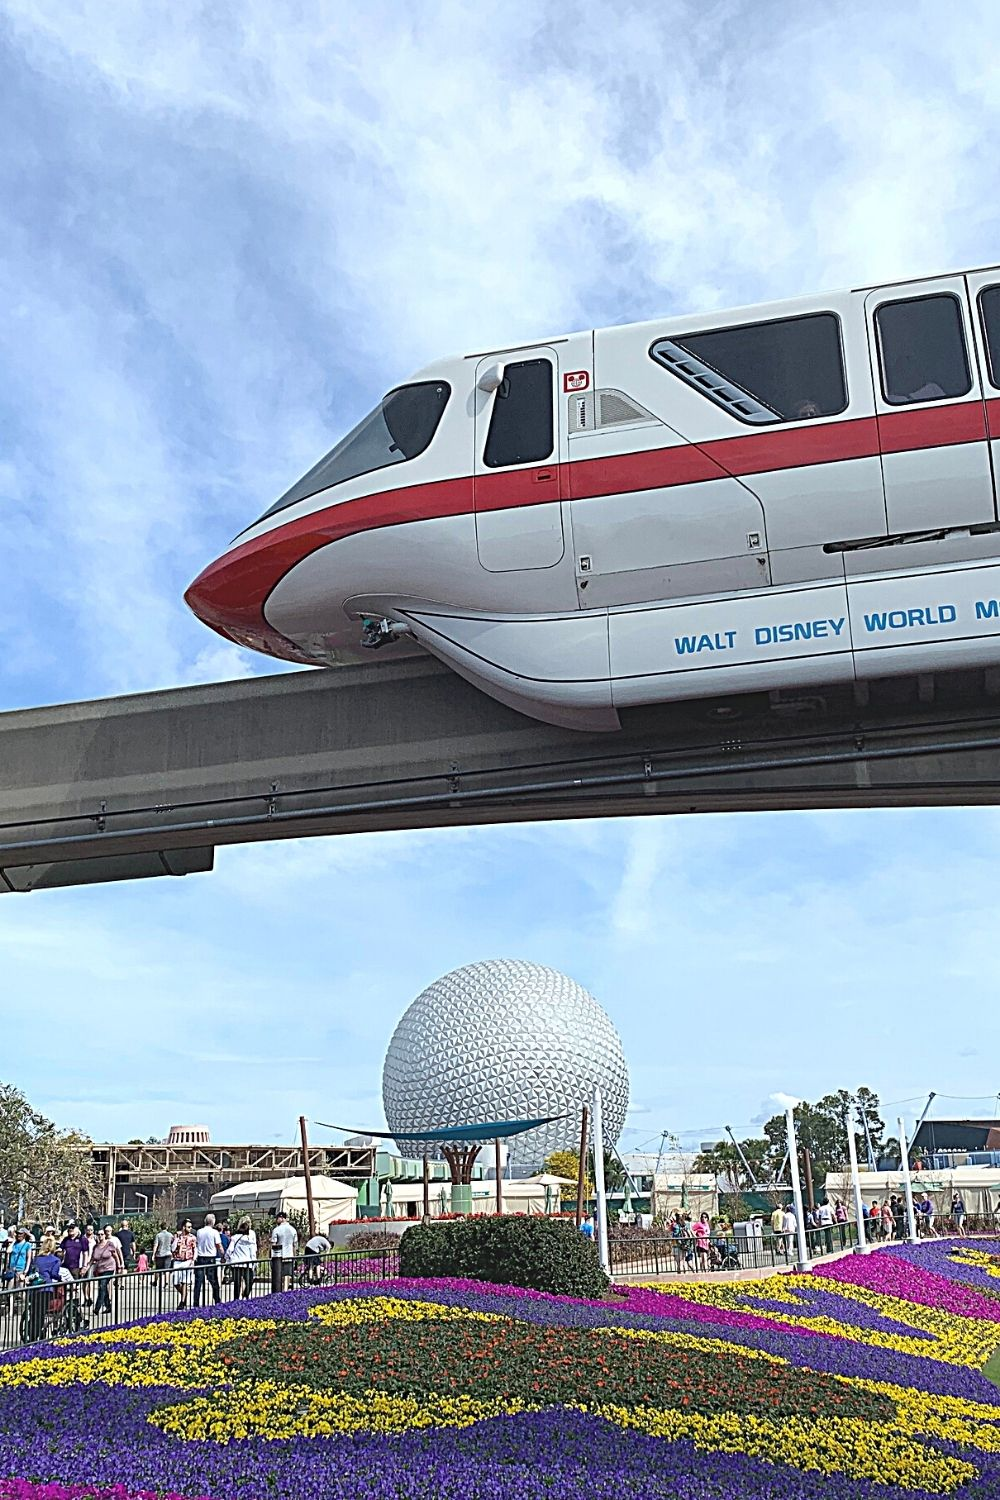 Disney vacations are the ultimate experience for many families, and they can be a little pricey. These Disney World money-saving tips will help you save some cash so you can get the most out of your Disney travel budget.